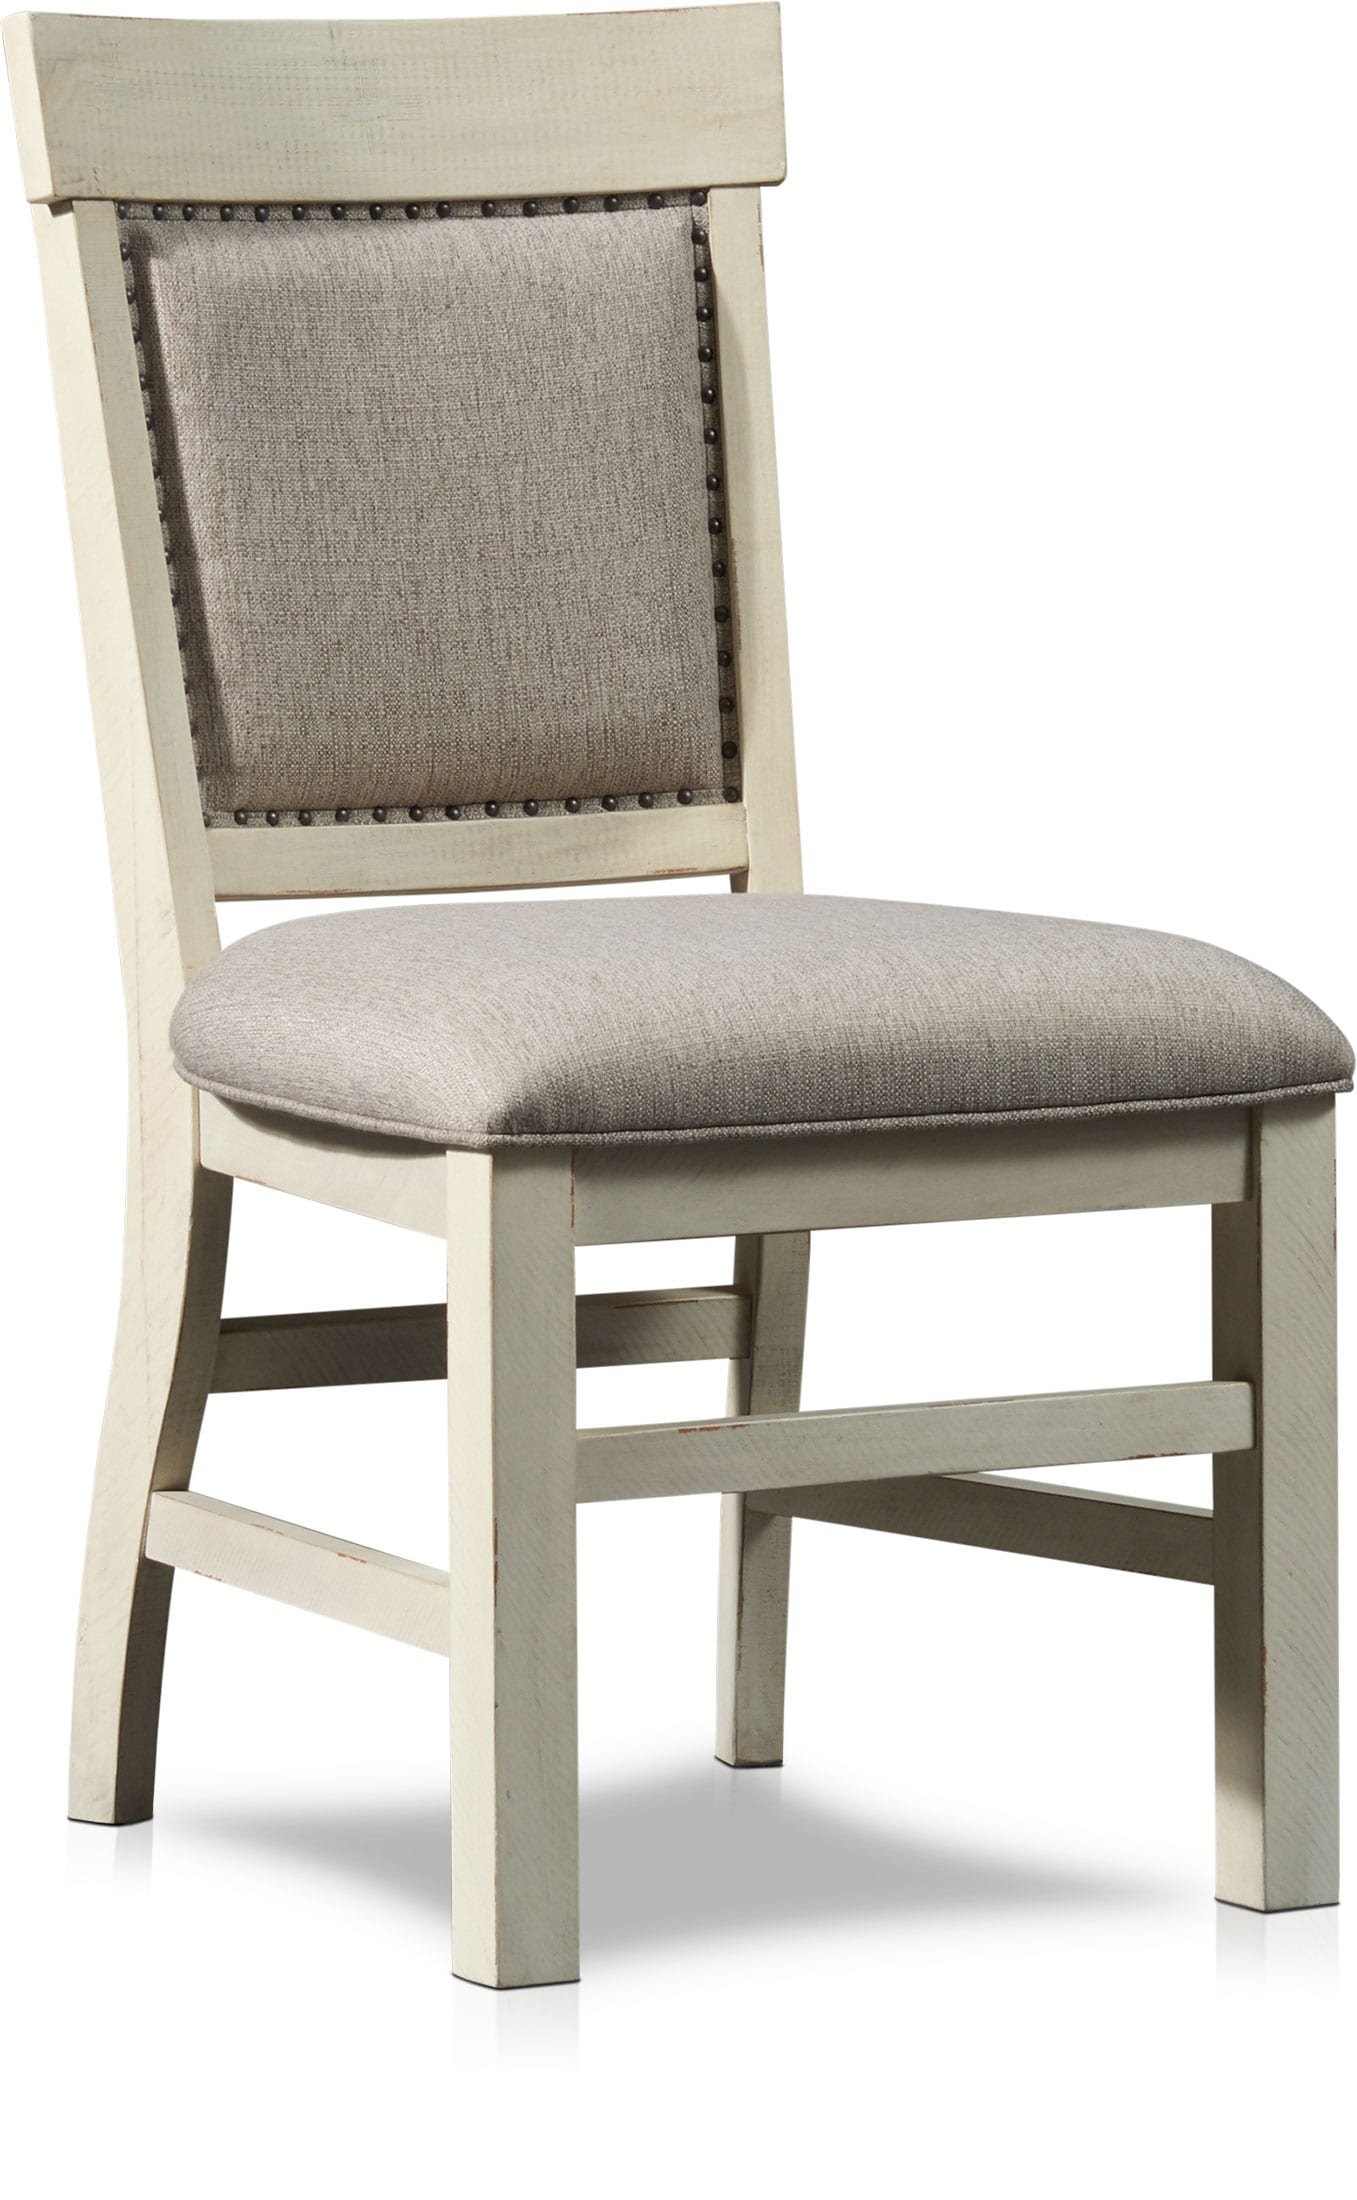 Charthouse Upholstered Dining Chair American Signature Furniture